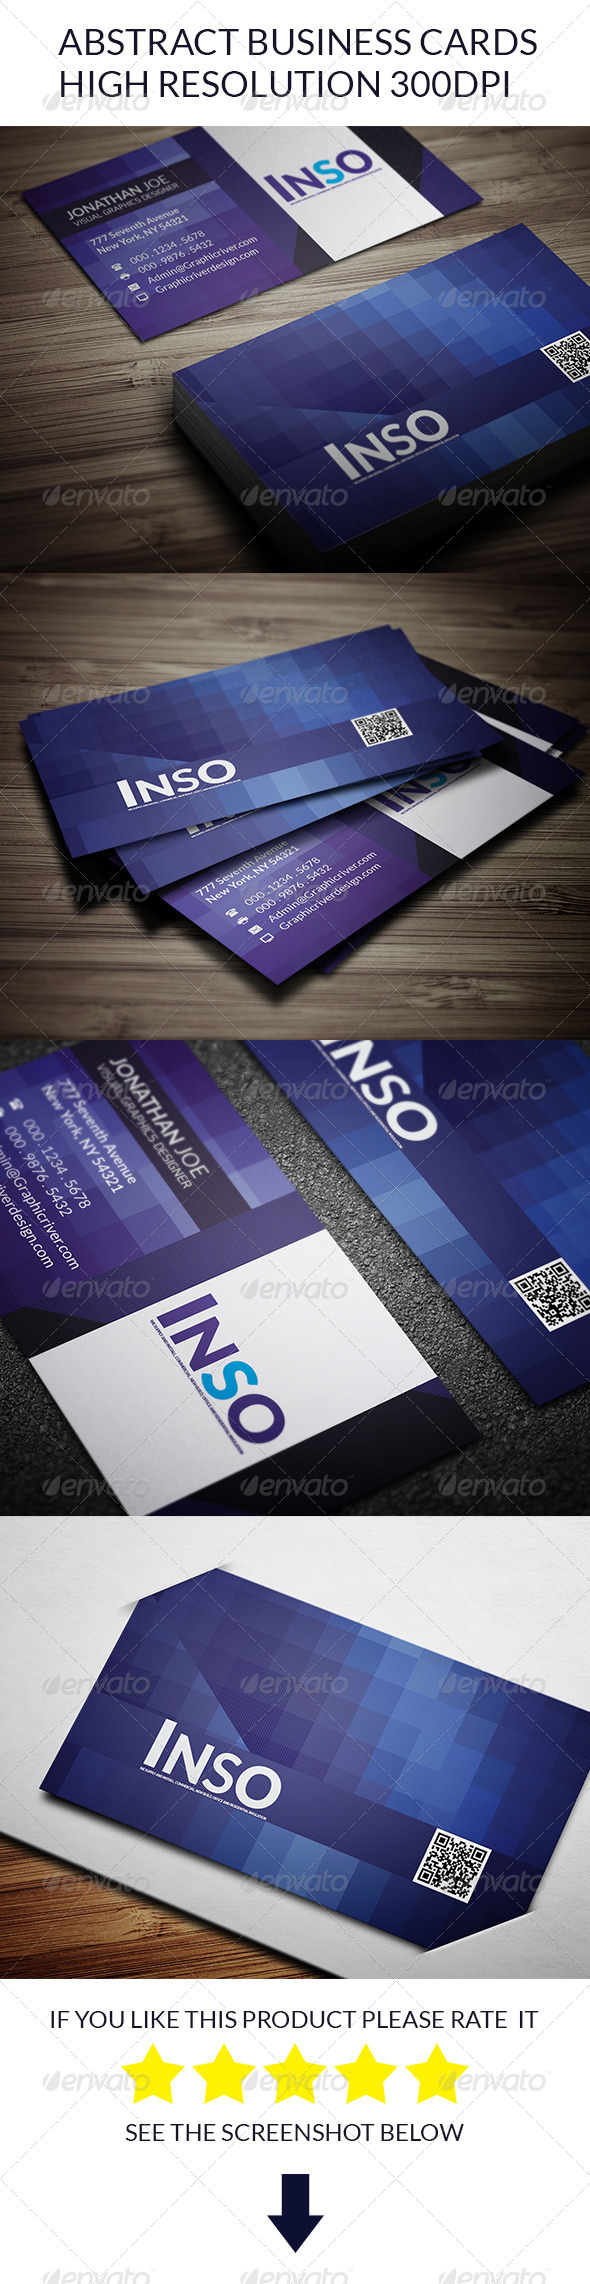 Abstract Business Cards - Creative Business Cards